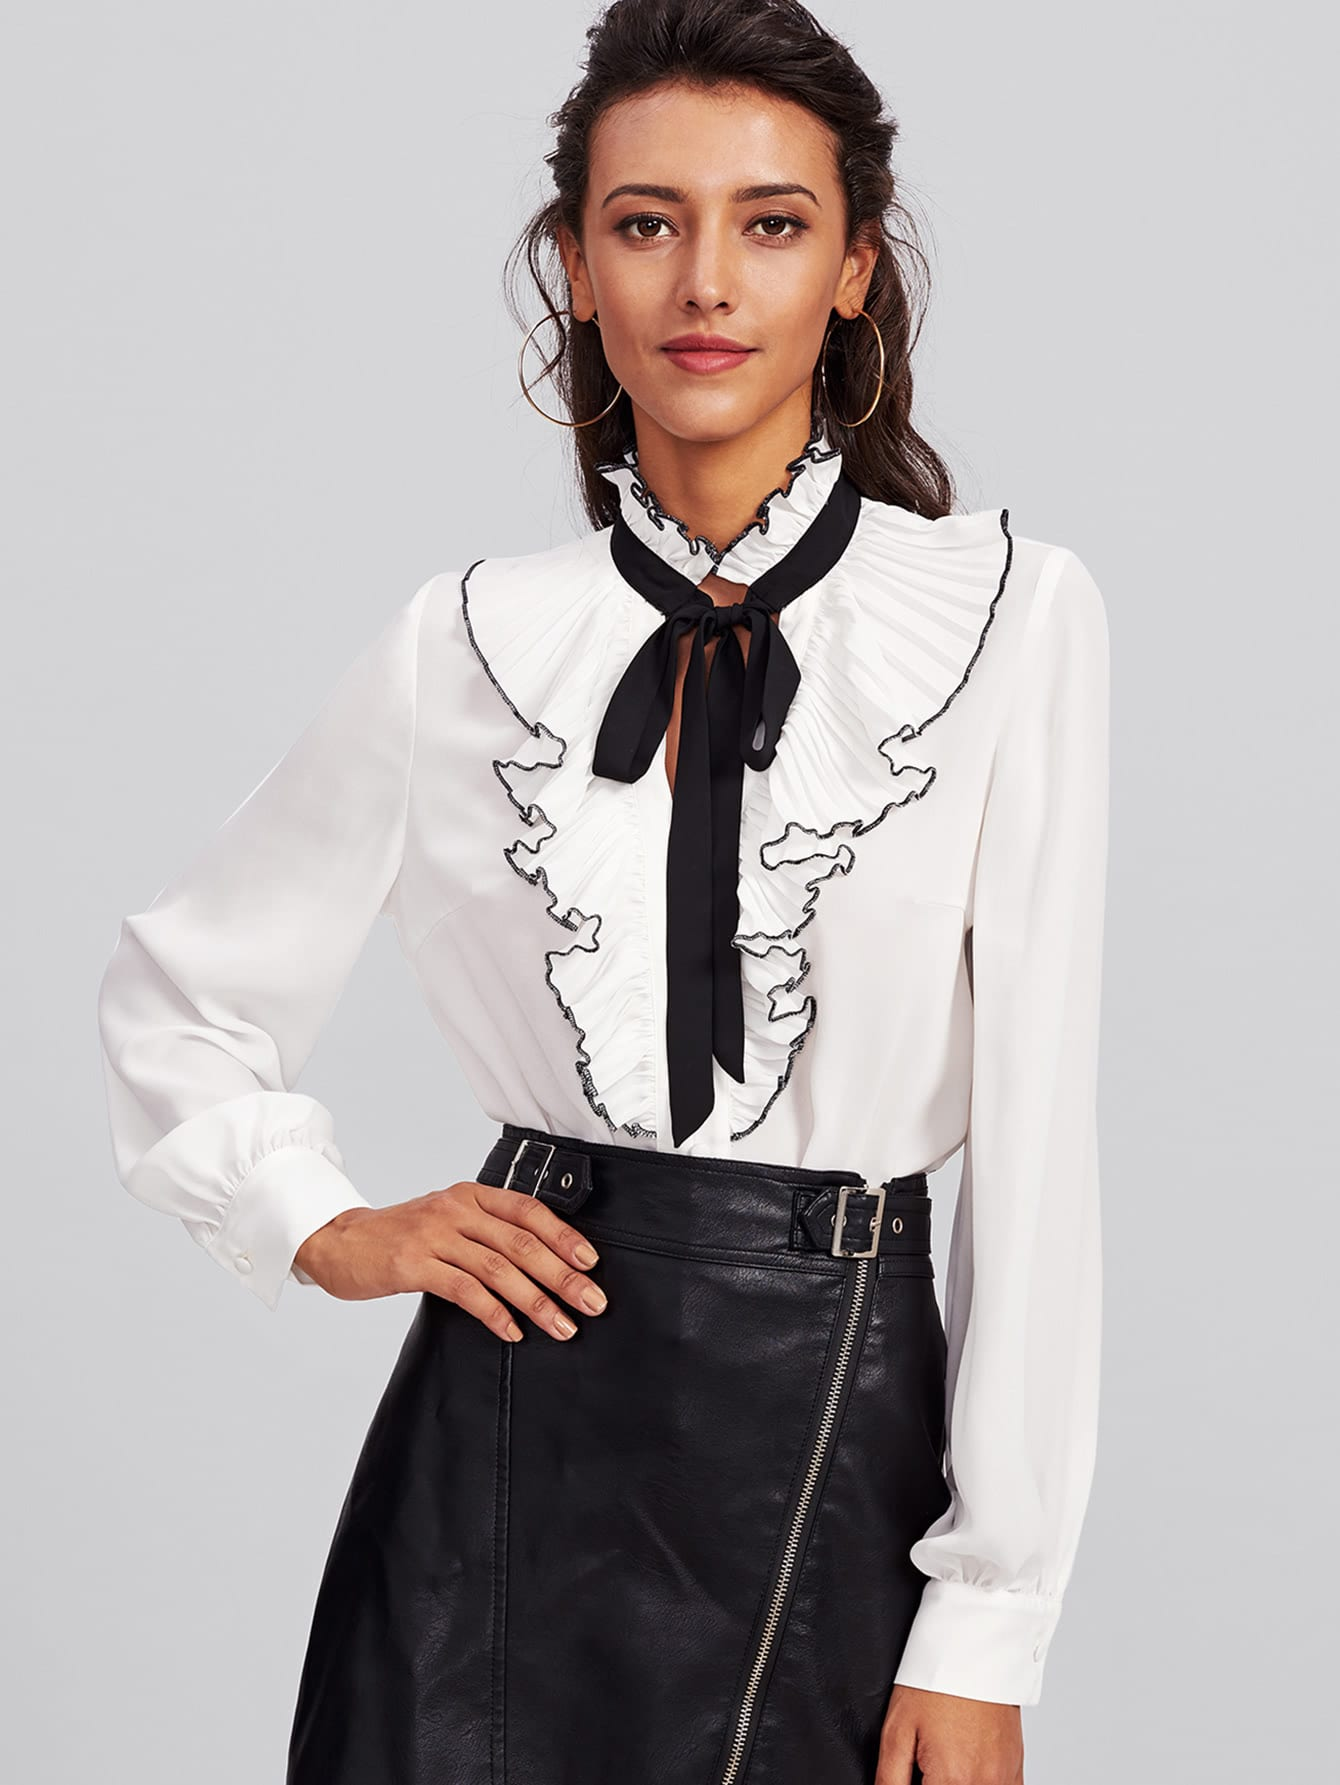 Bow Tie Pleated Frill Placket Blouse allover florals bow tie detail frill top with shorts